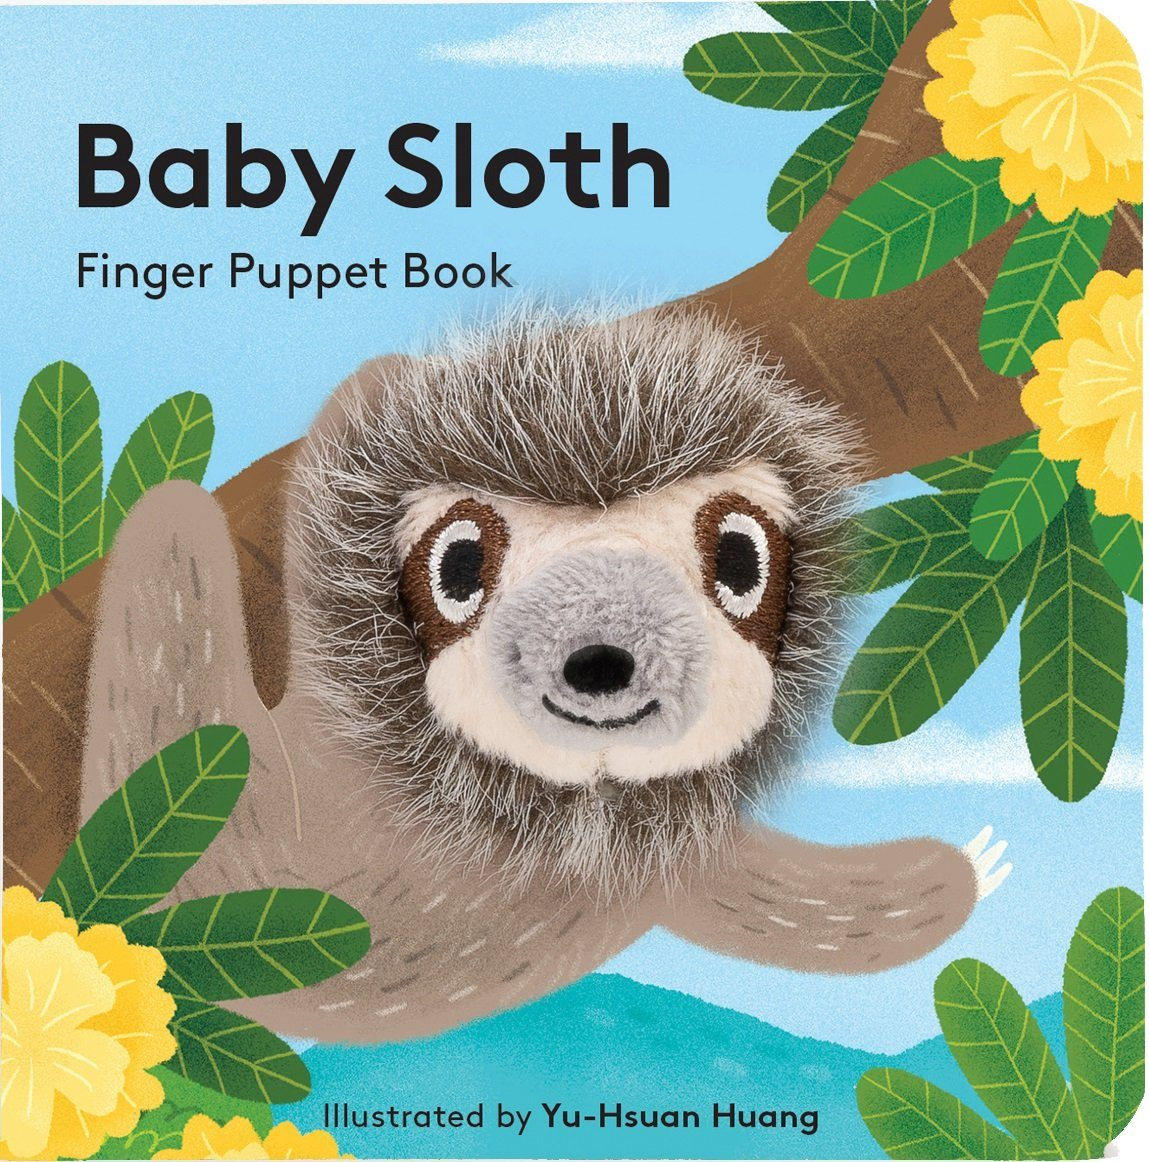 Baby Sloth Finger Puppet Book - BouChic